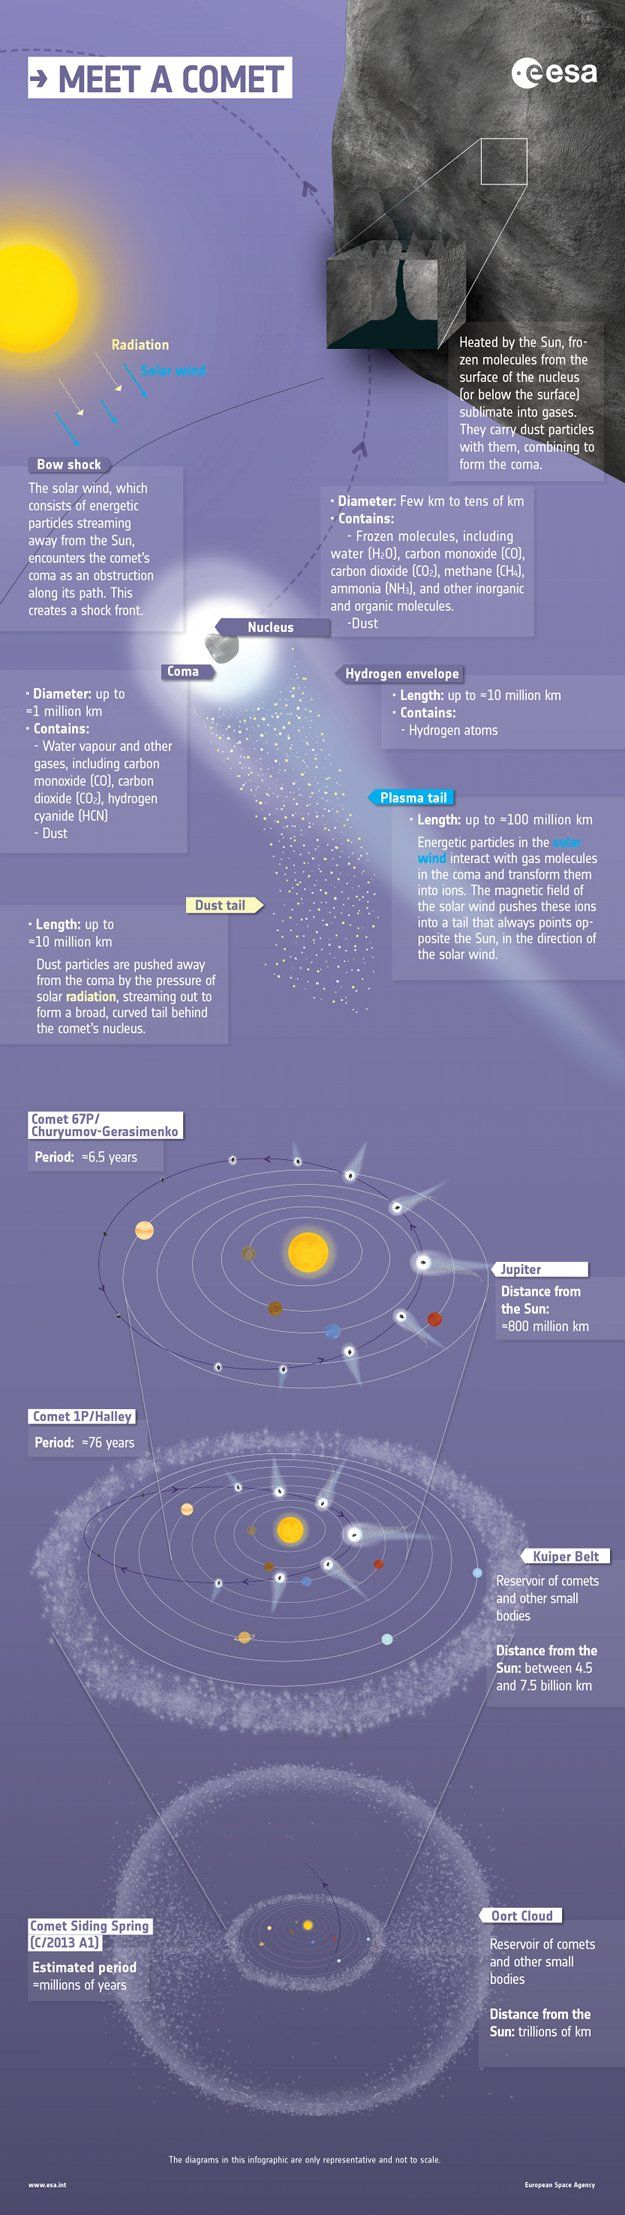 124 Best Ufos Astronomy Space Science Images On Pinterest Tycho Brahe Solar System Diagramjpg In 2014 08 Anatomy Of A Comet Infographic